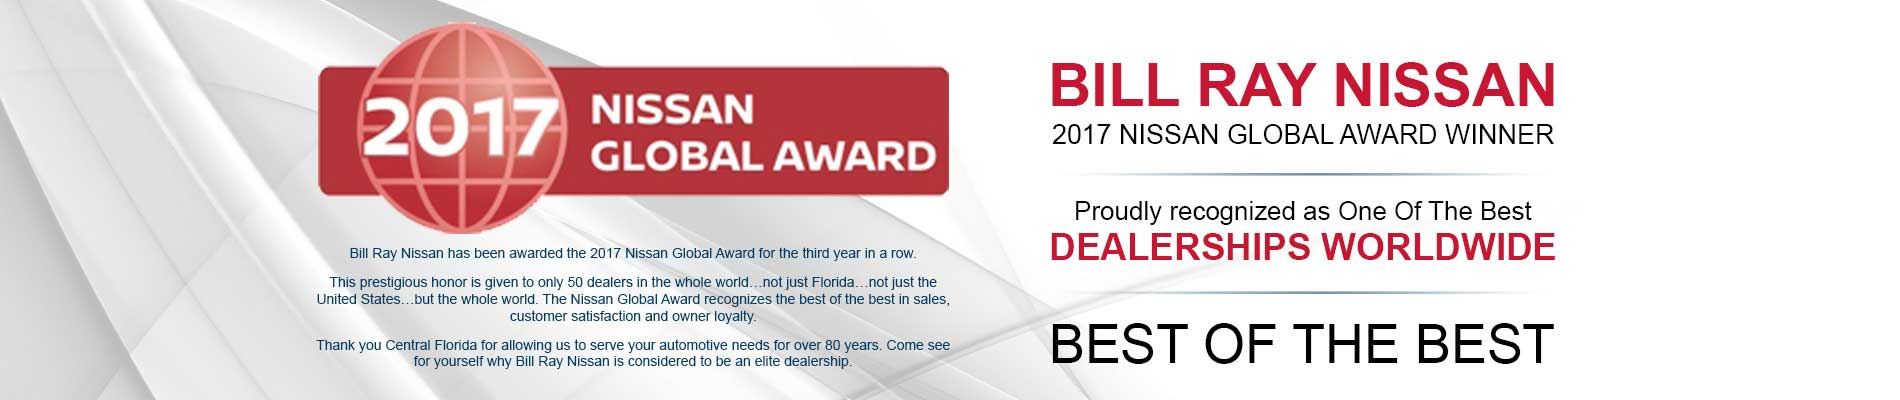 2017-nissan-global-award-red